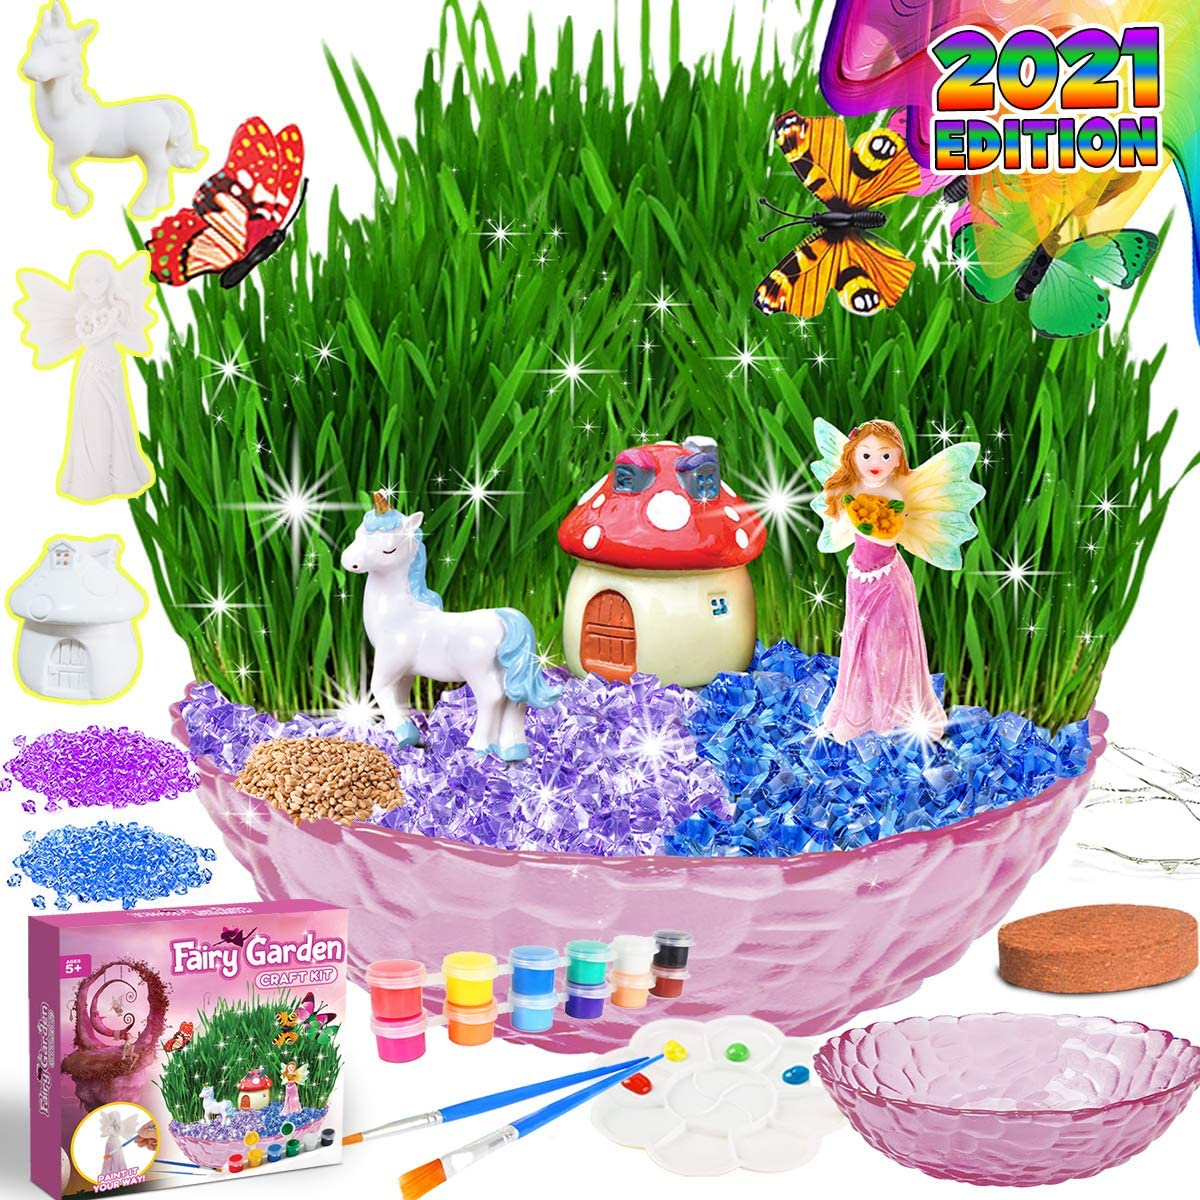 Catcrafter Fairy Garden Decor Tool Kit Set- DIY Indoor Outdoor Plant Accessories Gardening paint kit Grow Light STEM Project Arts and Crafts Unicorns Gifts for girls boys toddlers kids ages 5 6 7 8 9+